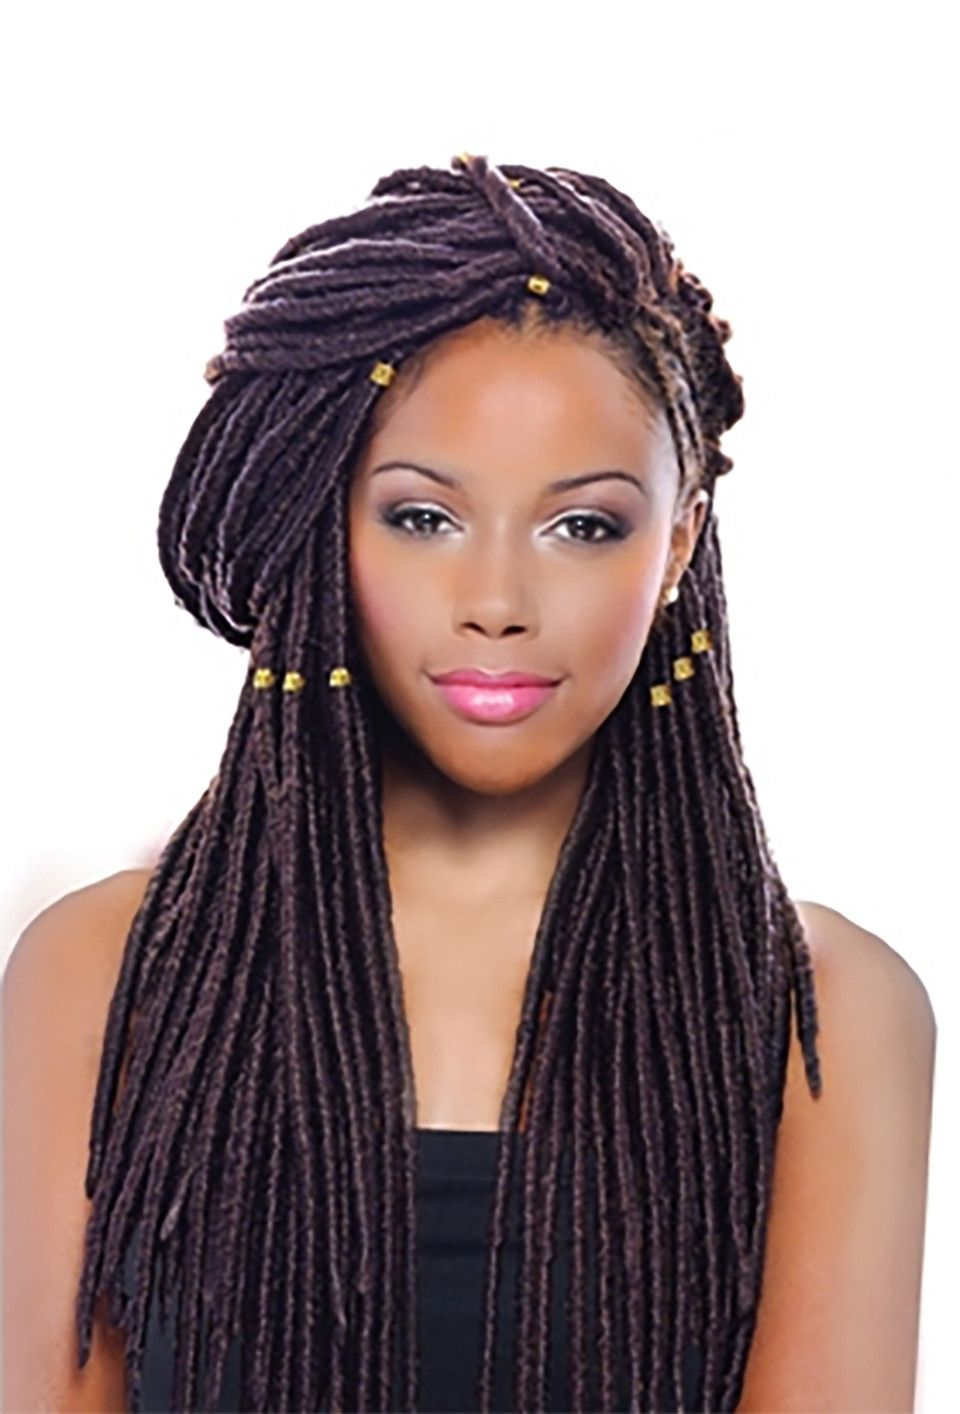 Individual Braids Styles You'll Love | Single Braids Guide